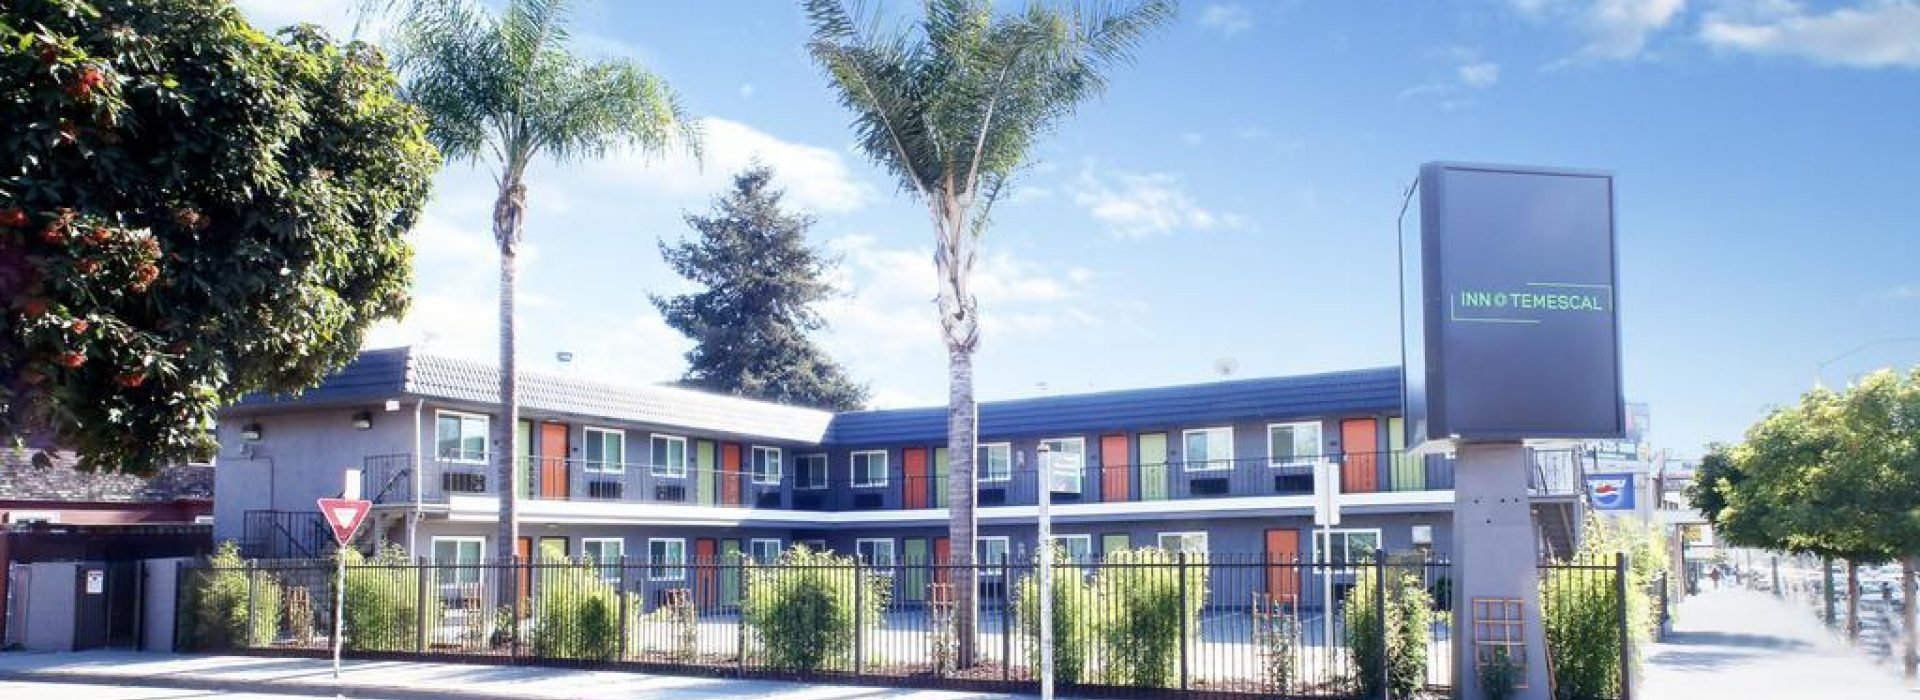 Homekey Awarded to Danco Communities for Oakland Inn at Temescal Project